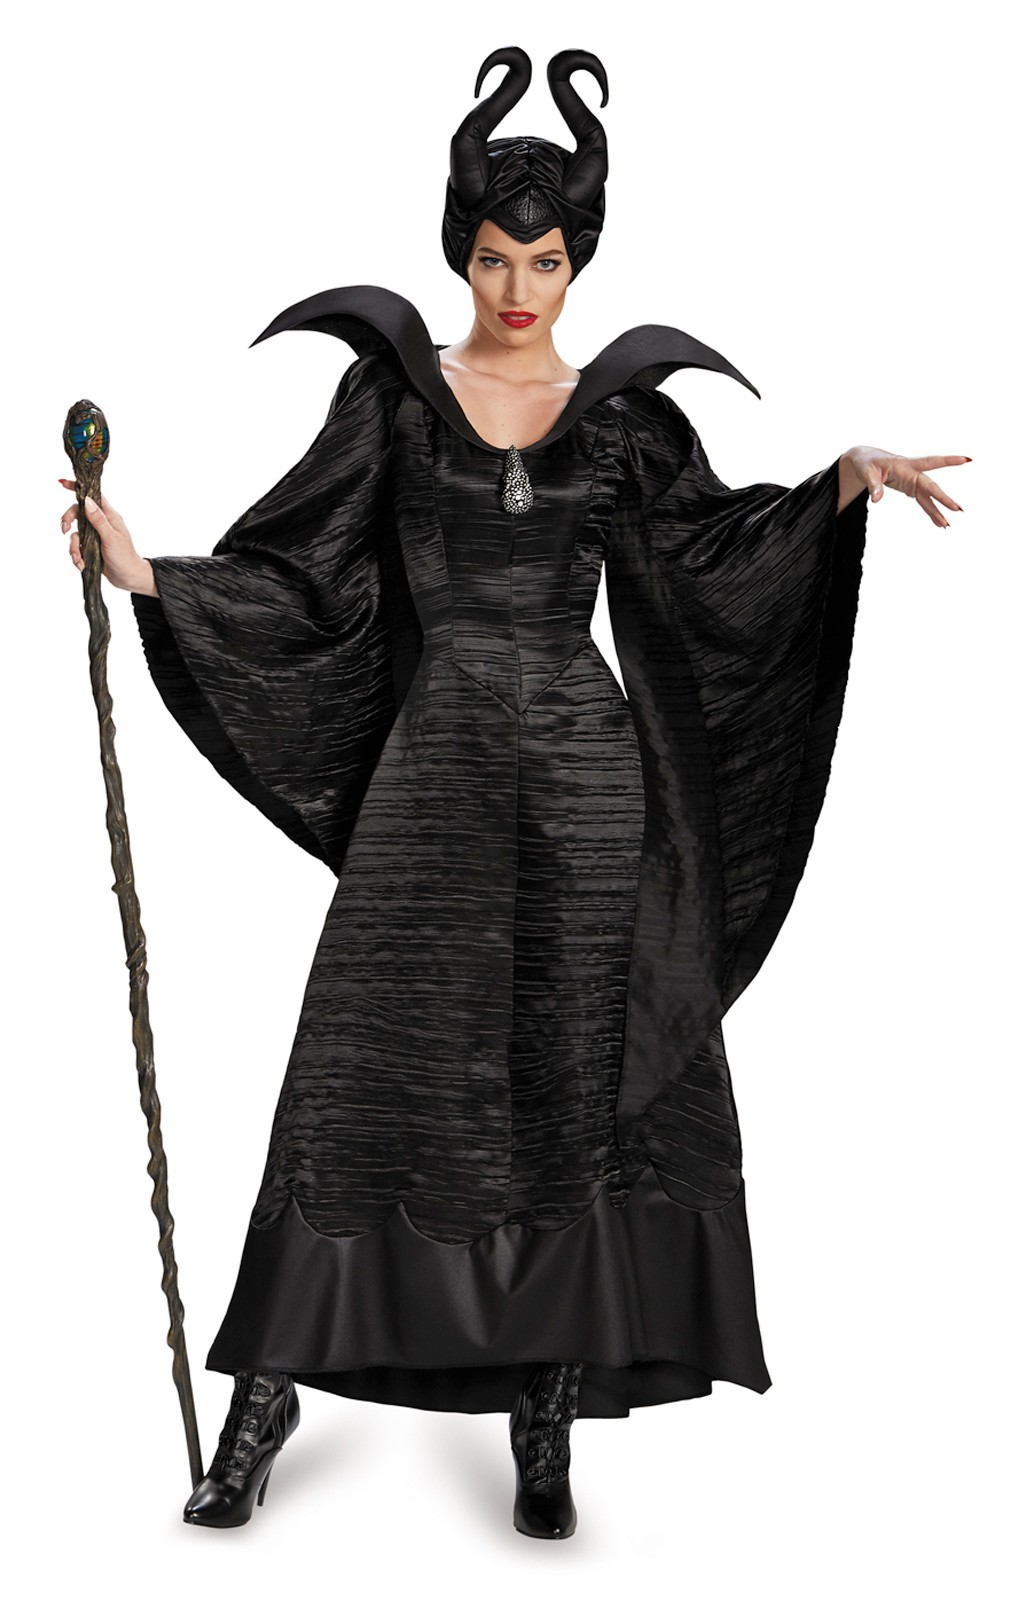 Maleficent Deluxe Christening Black Gown Adult Plus Size Womenu0027s Costume  sc 1 st  Costumes.com.au : plus size madonna costume  - Germanpascual.Com